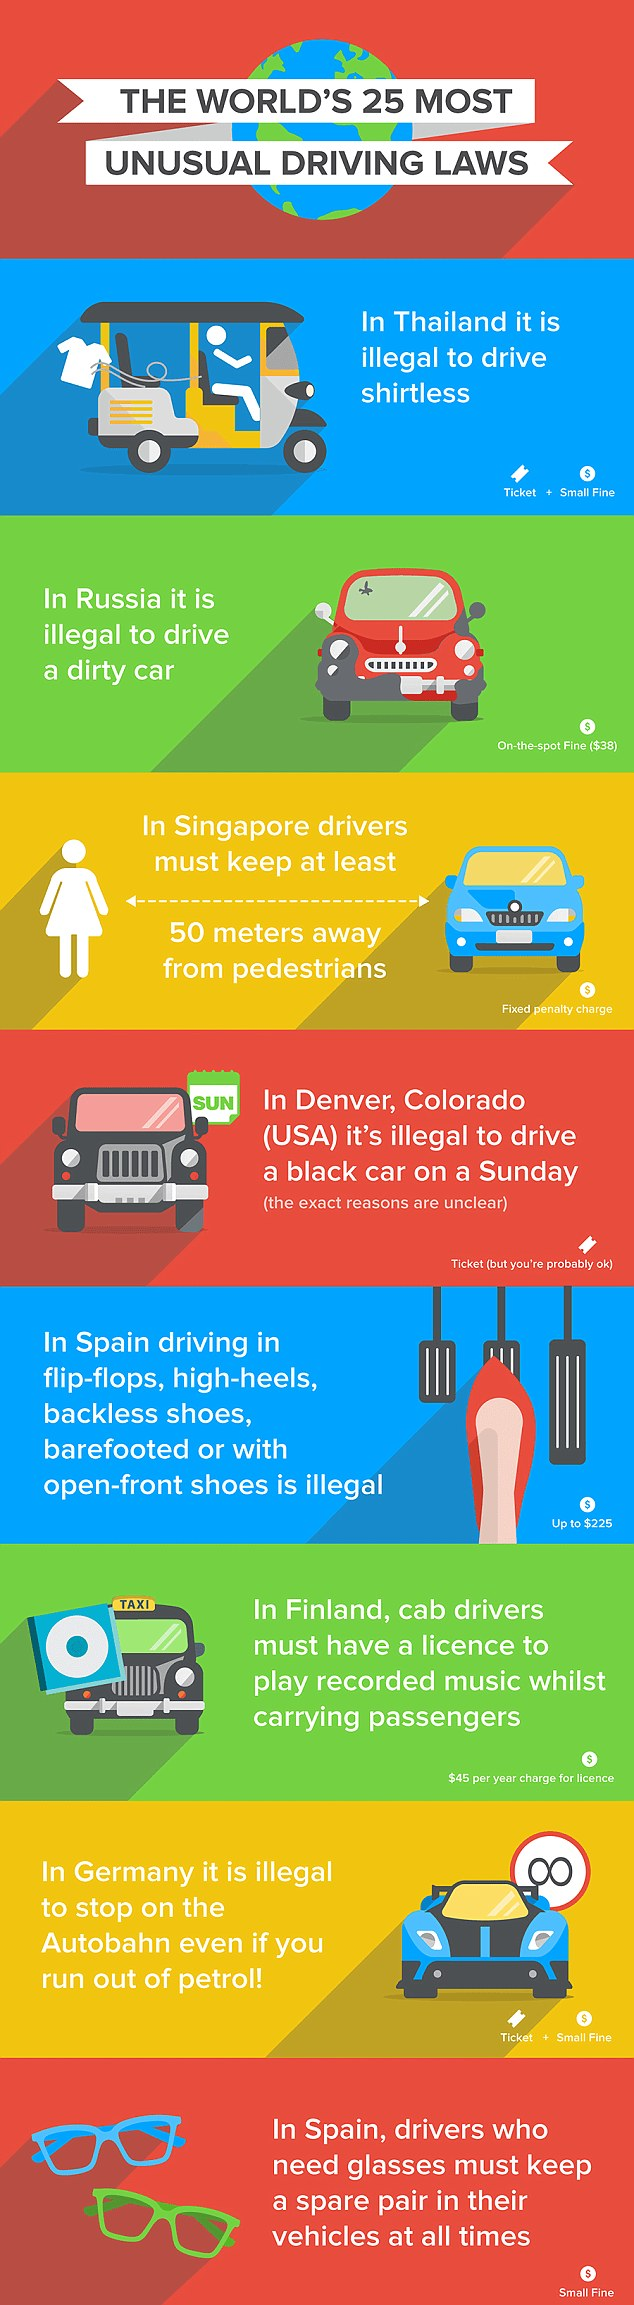 Splashing a pedestrian with a car is illegal in both the UK and Japan, however they have very different ways of dealing with drivers who've done this